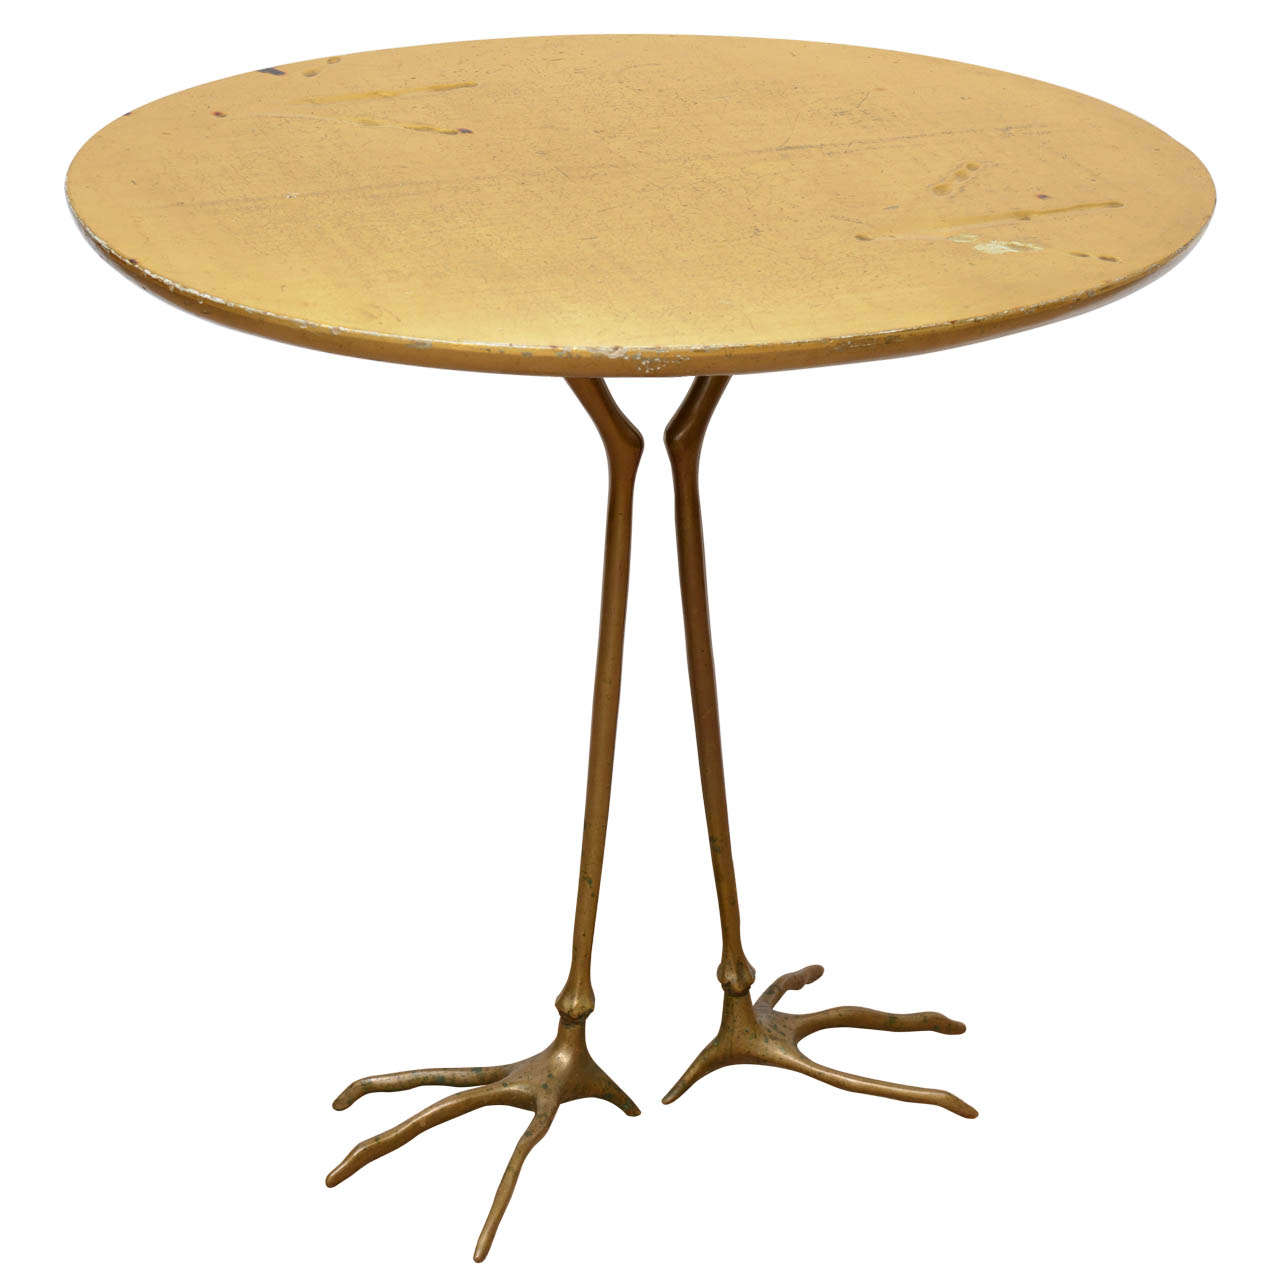 Traccia Table By Meret Oppenheim At 1stdibs